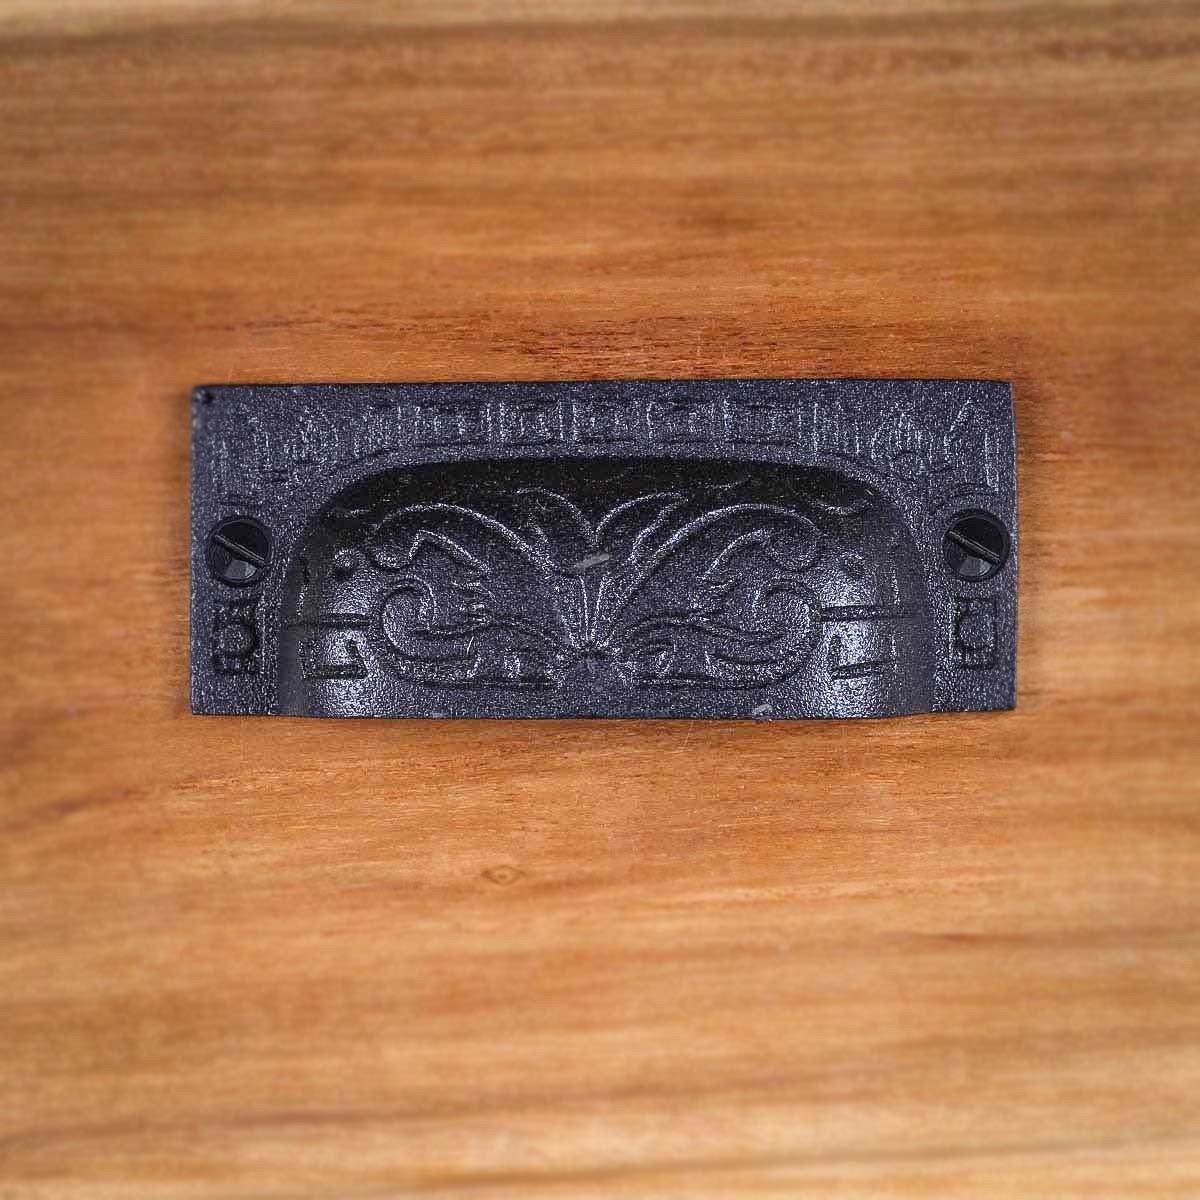 Cabinet or Drawer Bin Pull Black Iron Cup 3 12 x 1 14 H Cabinet Pull Cabinet Hardware Cabinet Pulls